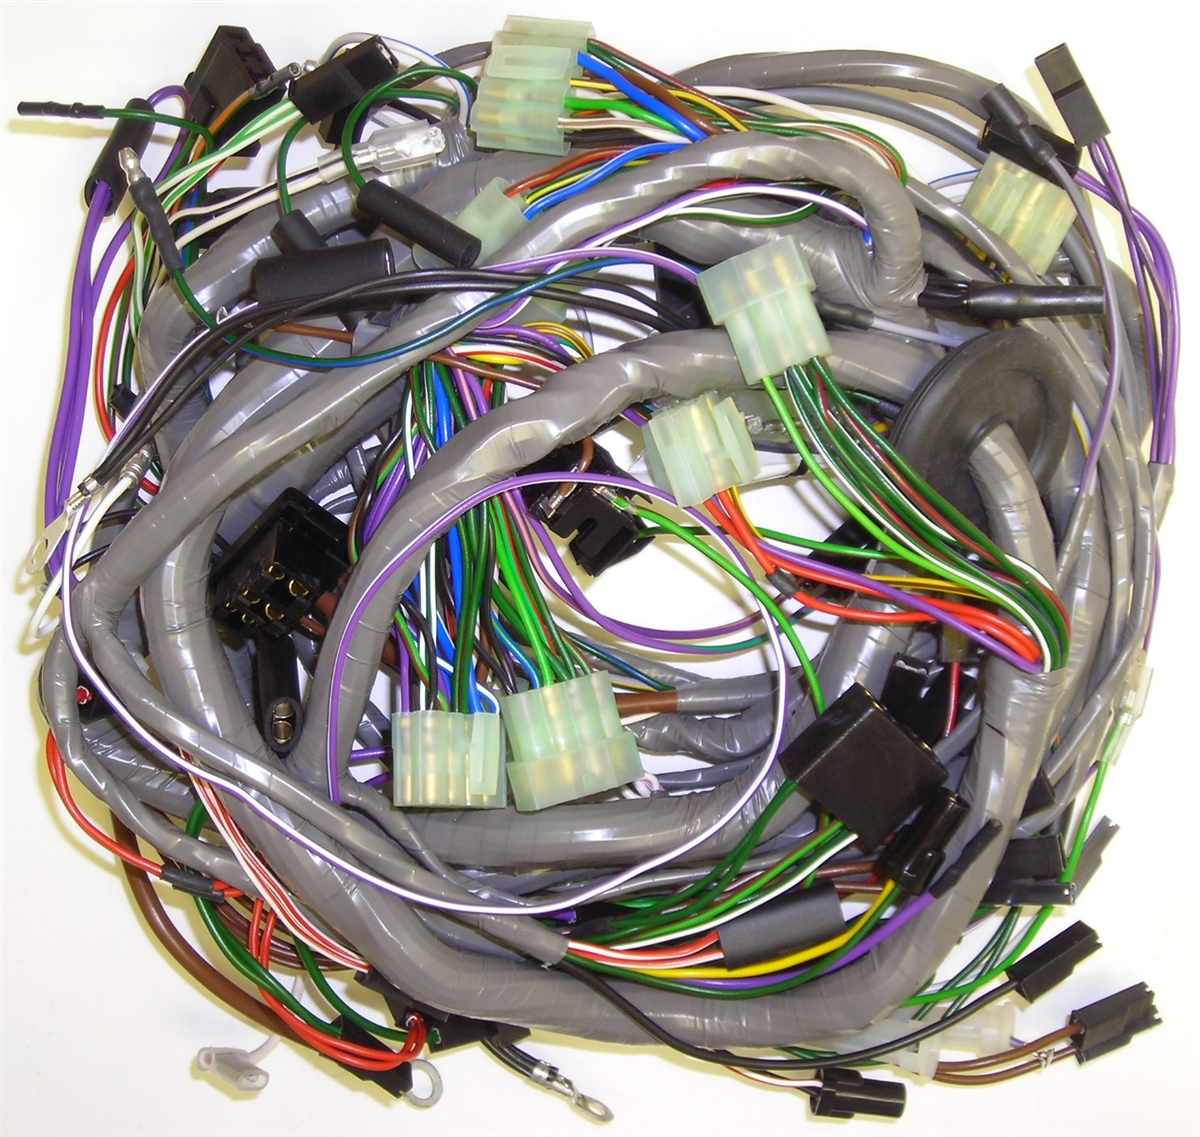 small resolution of main wiring harness mg midget 1977 80 ca spec 1757 1977 mg midget wiring harness mg midget wiring harness